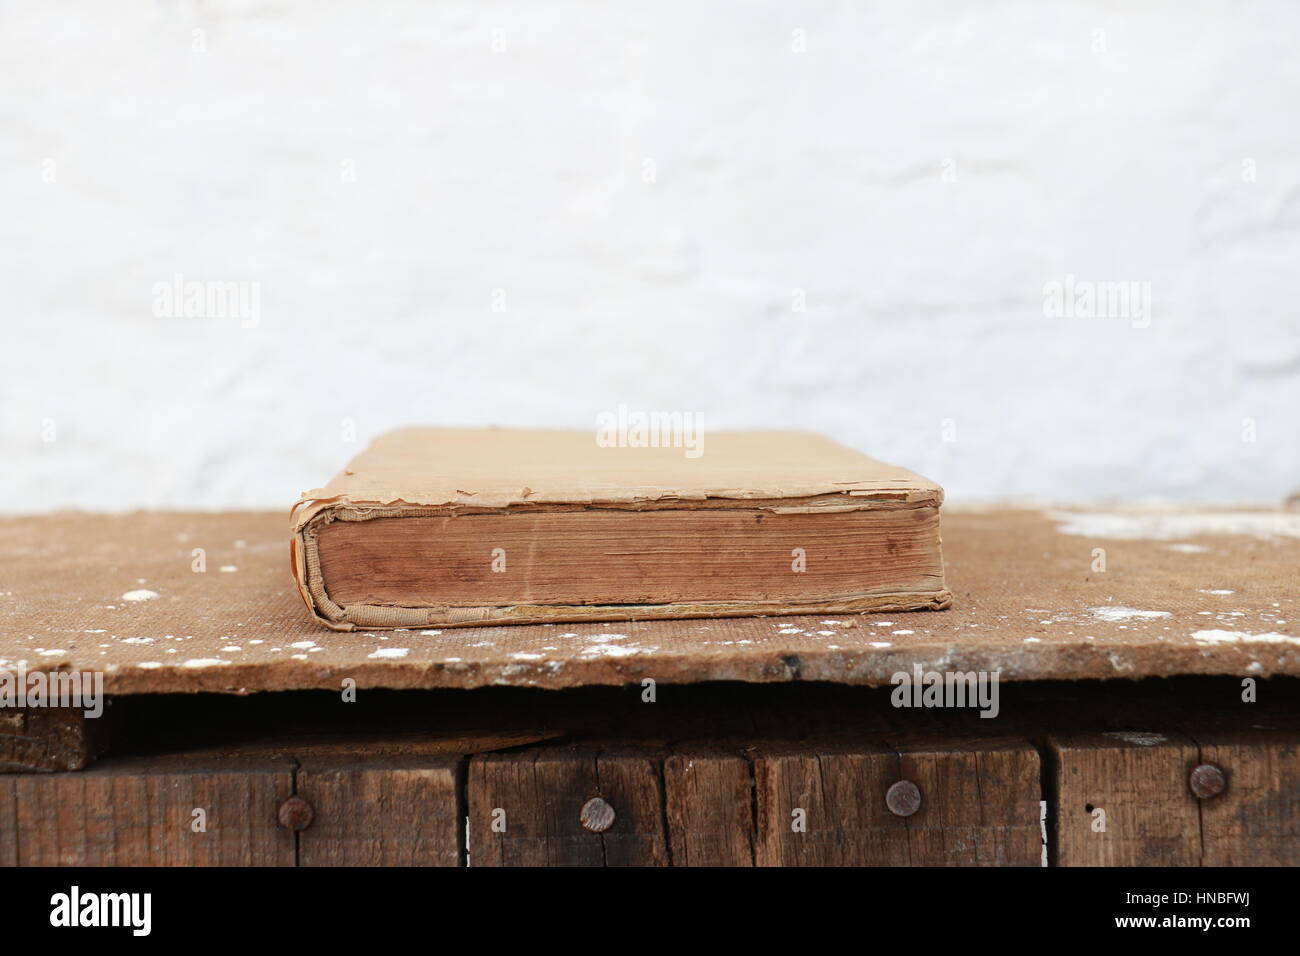 Old Book Closeup Shot - Stock Image